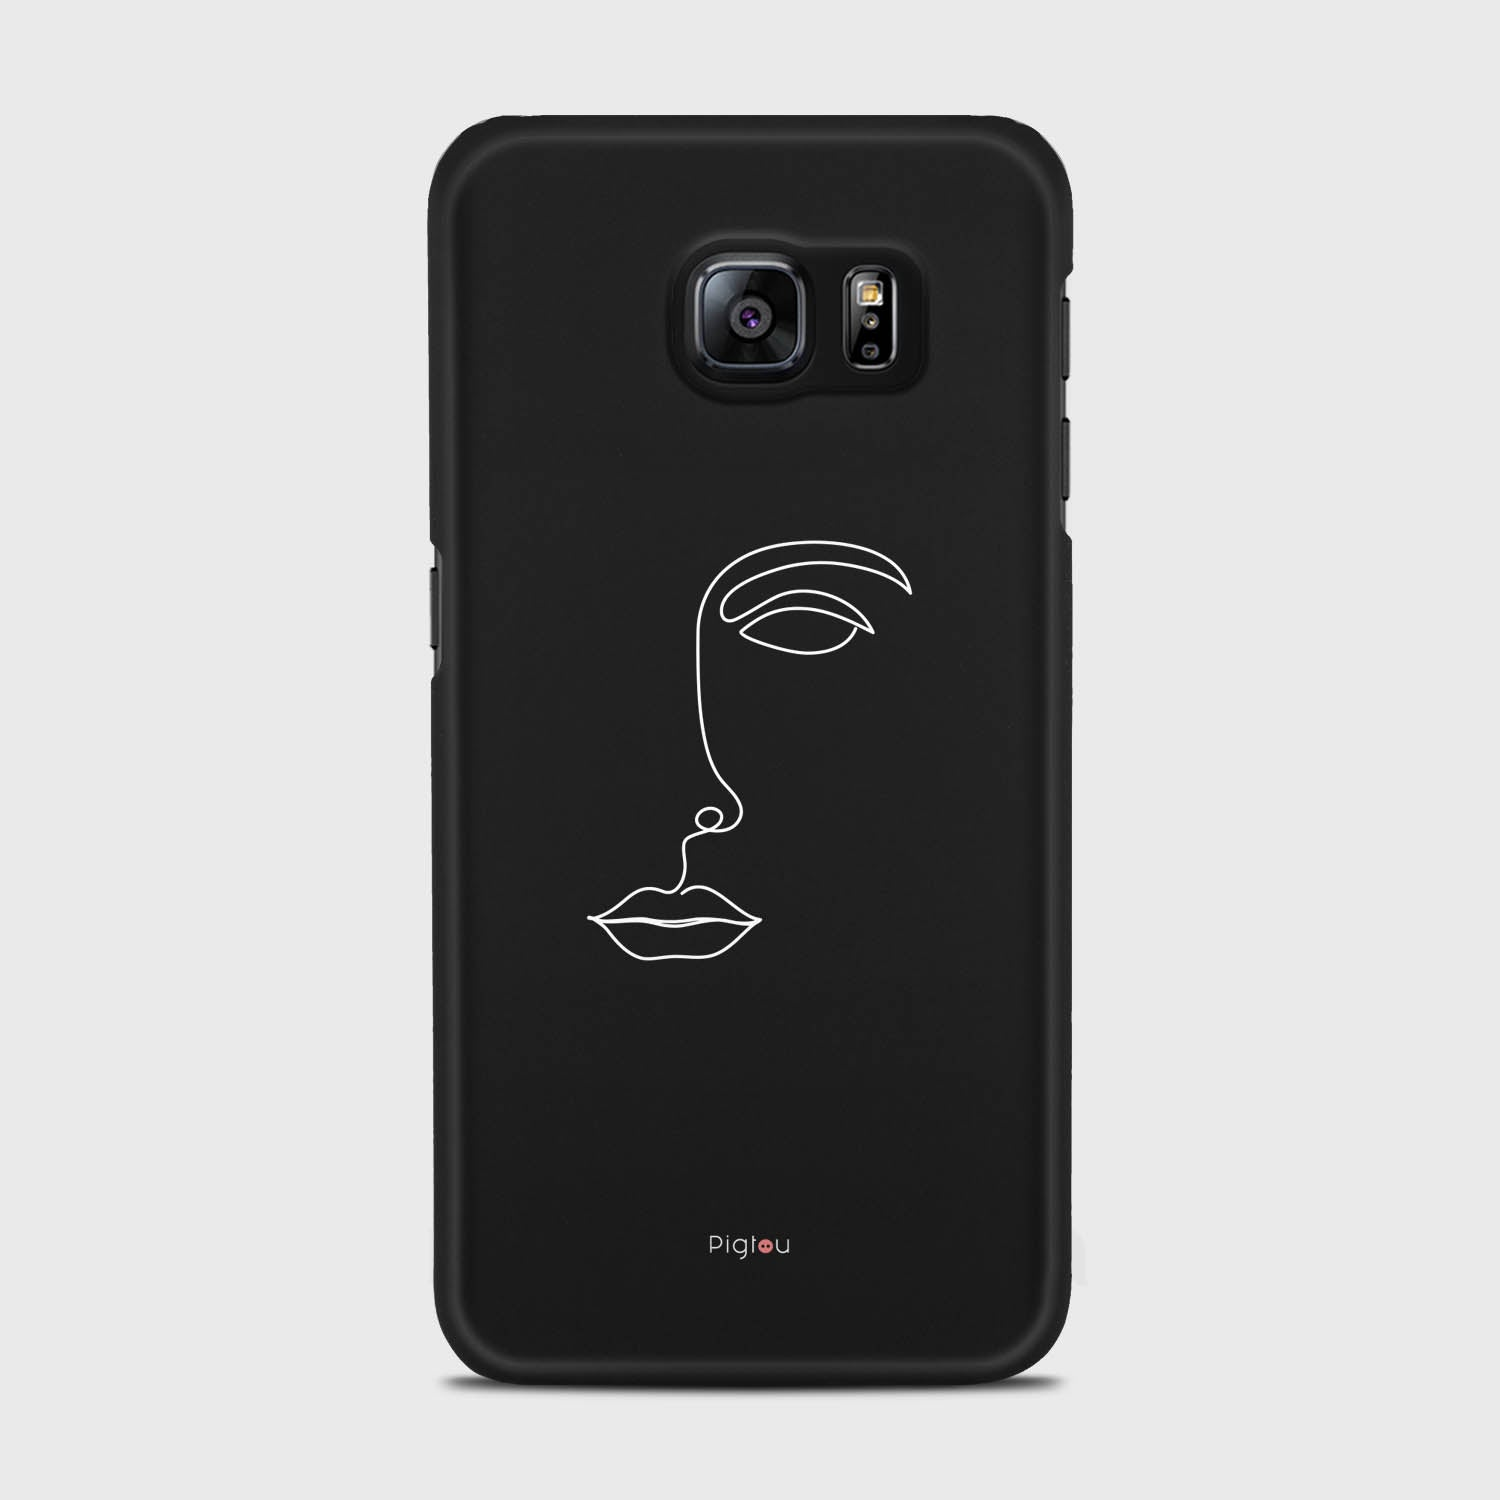 SILHOUETTE FACE Samsung Galaxy S6 cases | Pigtou